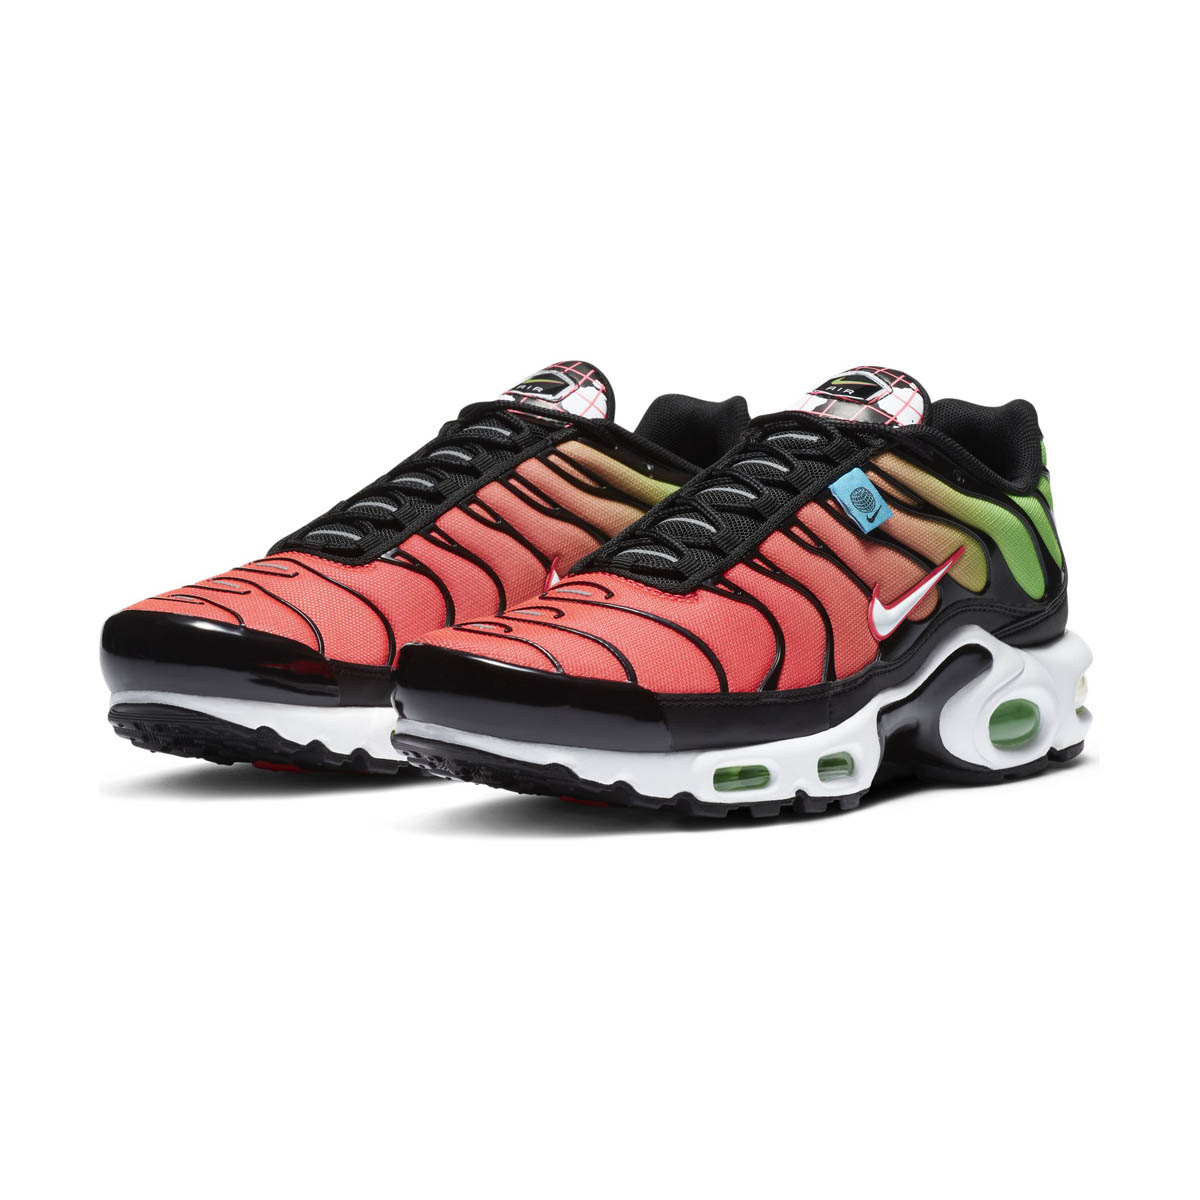 Men's Nike Air Max Plus SE